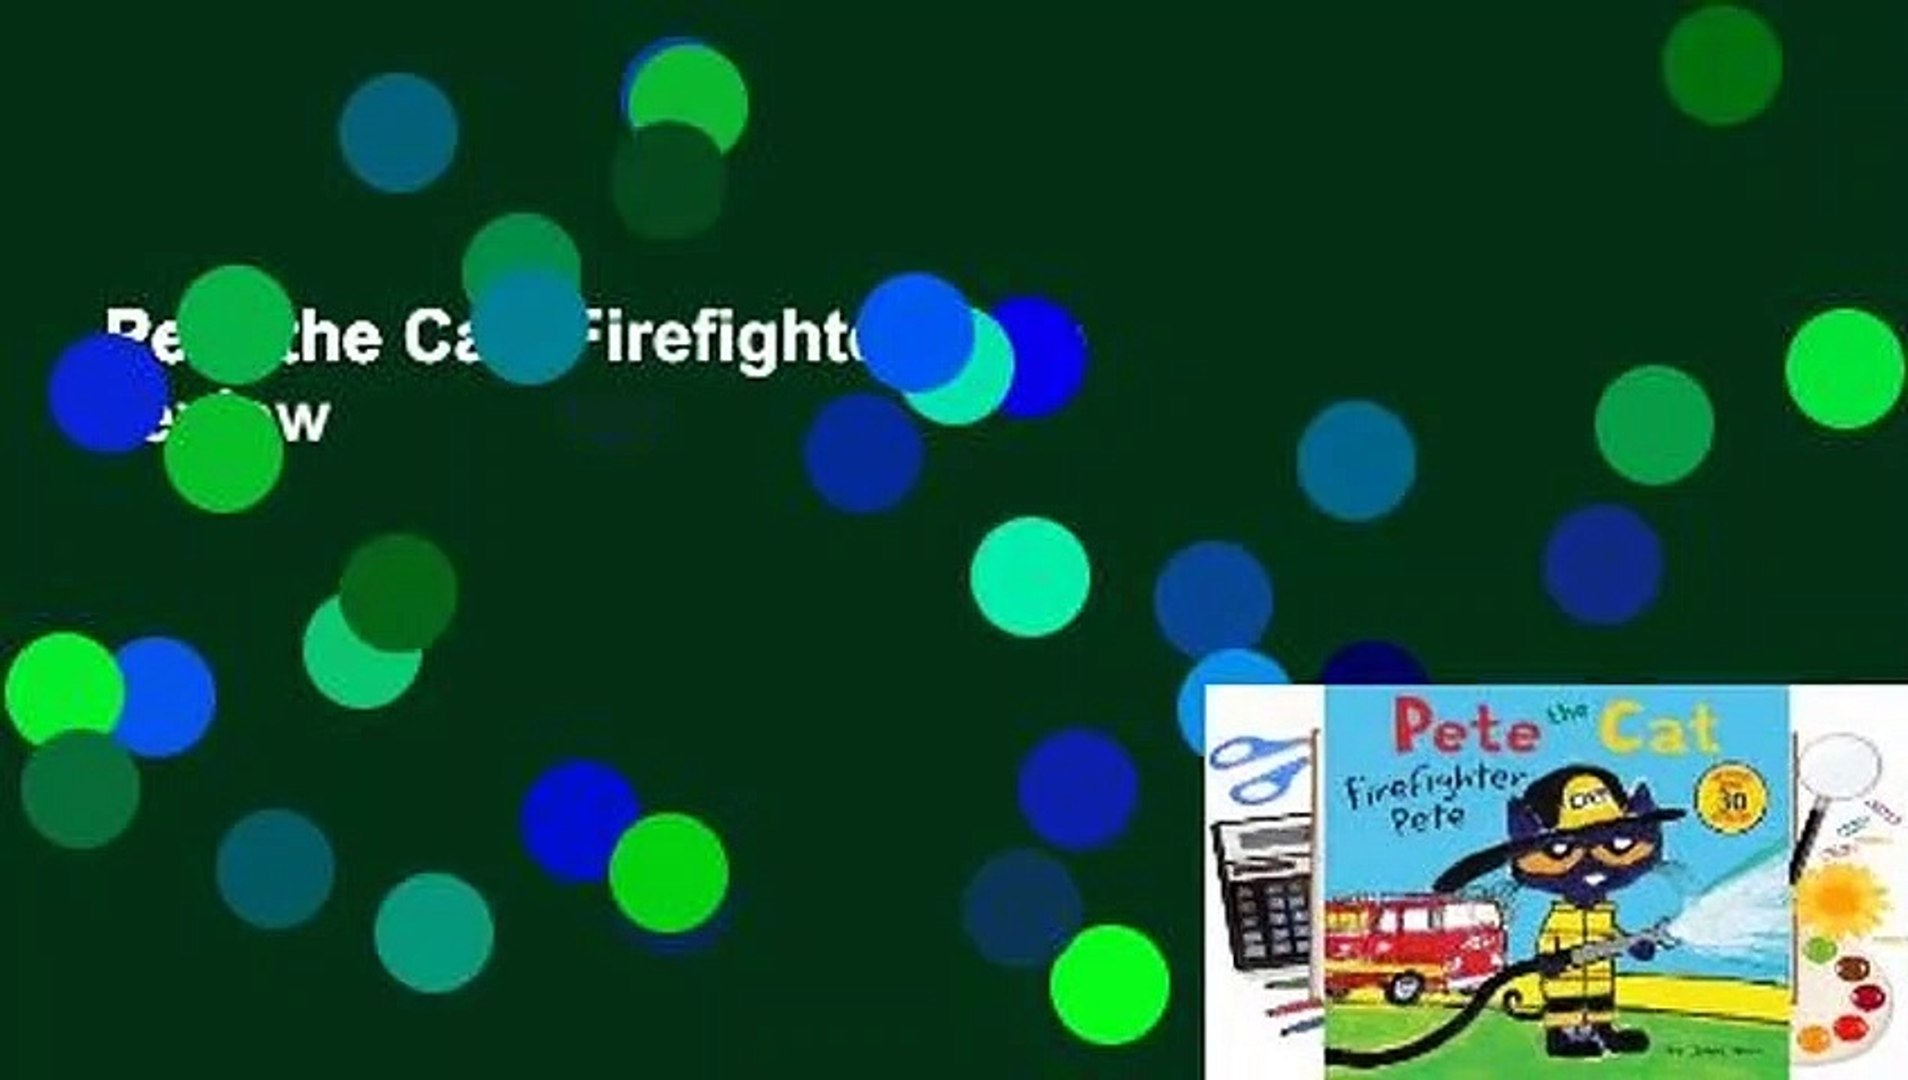 Pete the Cat: Firefighter Pete  Review